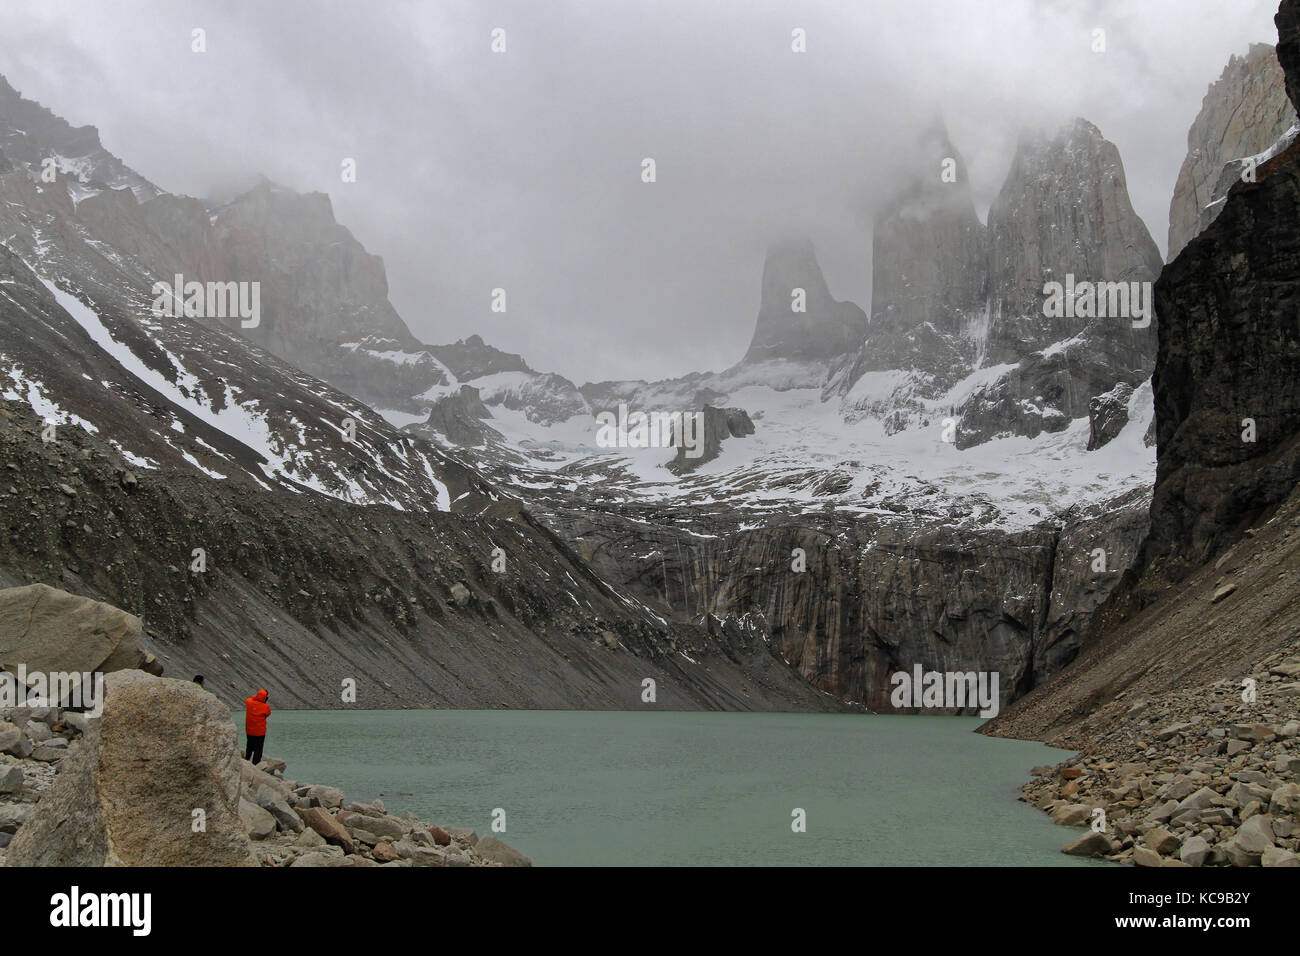 PAINE, CHILE, December 29, 2013 : Three towers of Torres del Paine over the lake - Stock Image